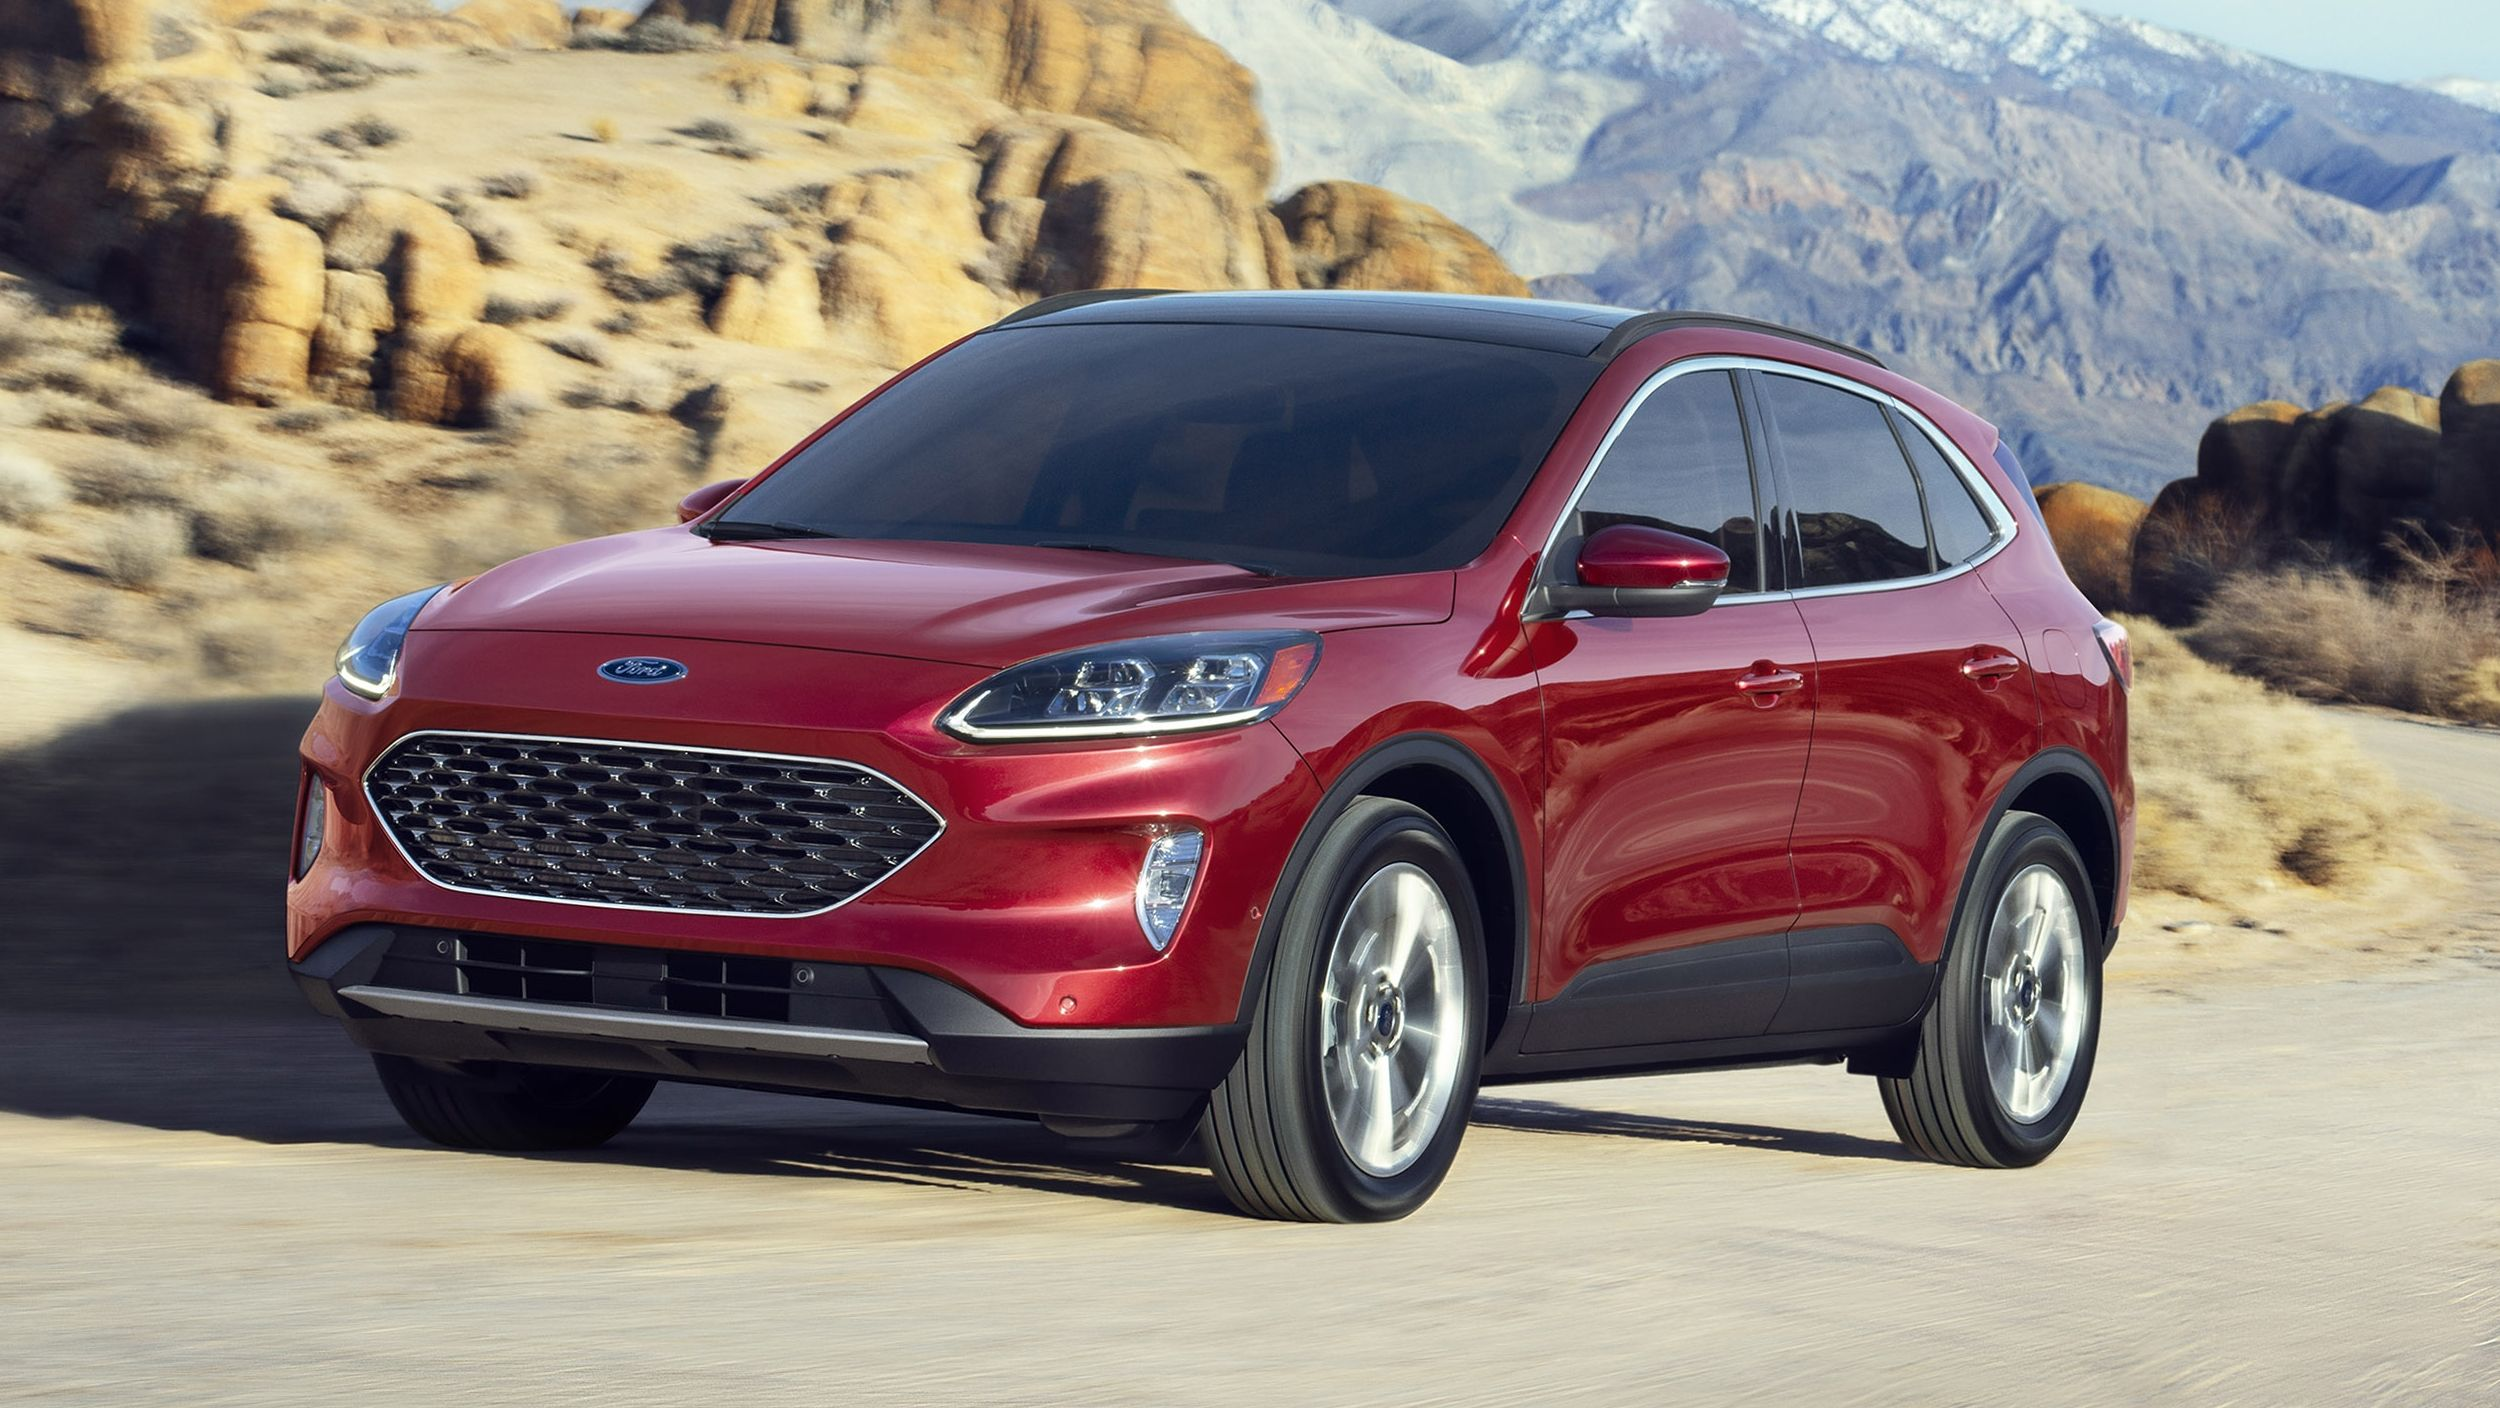 The 2020 Ford Escape Is Smarter But It Looks Like A Focus Or